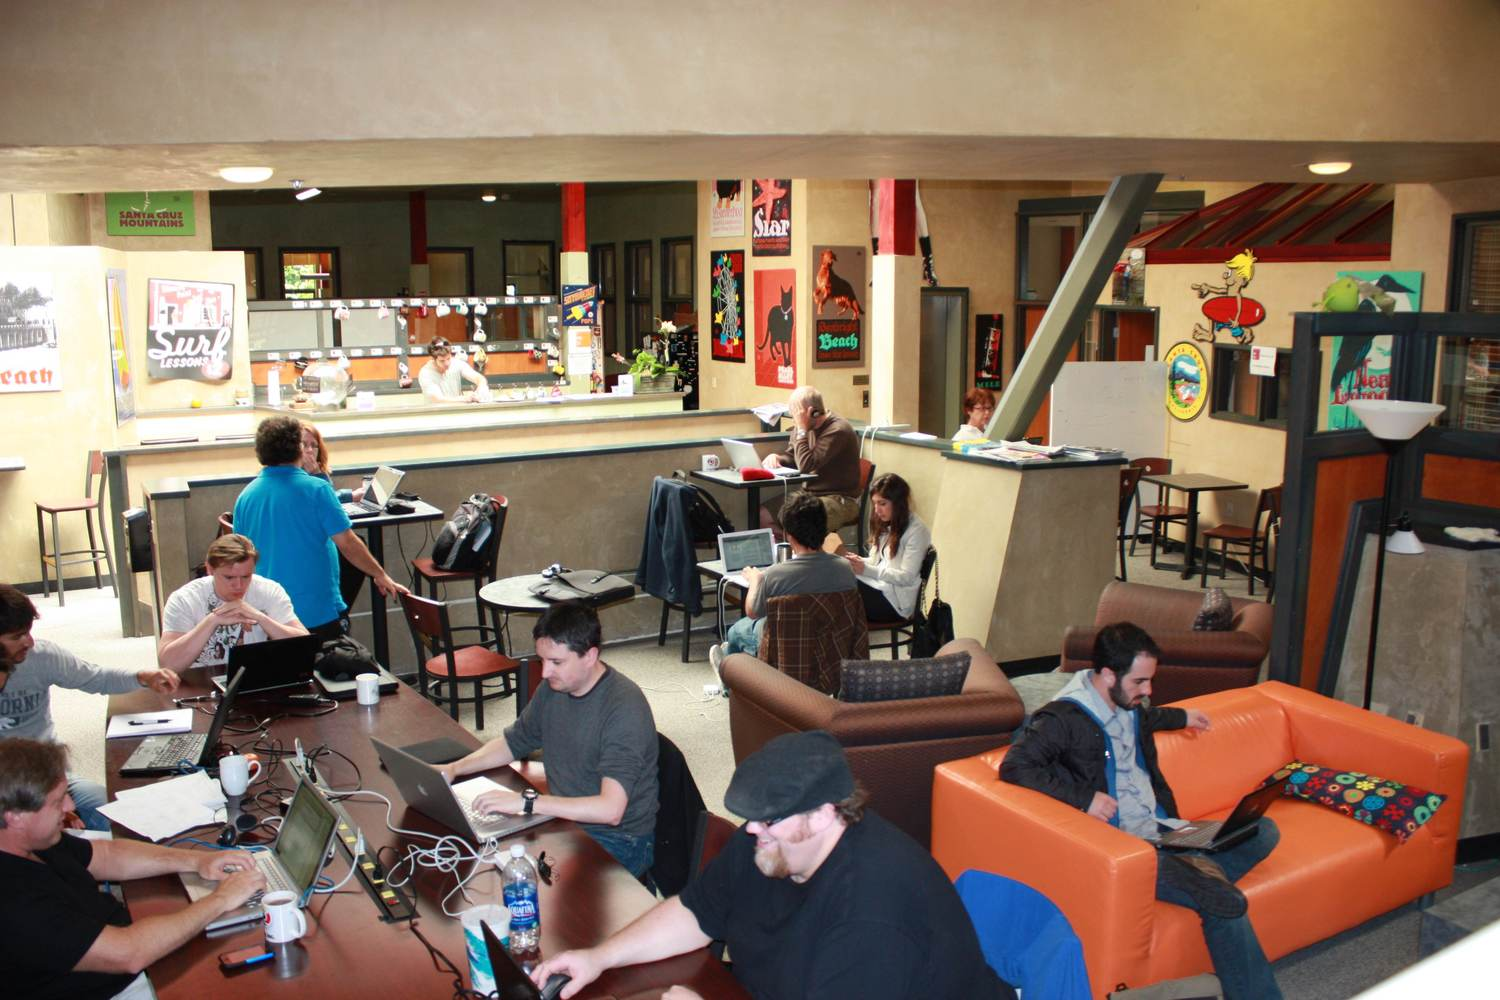 The Top 75 Coworking Spaces In The U.S. — Symmetry50